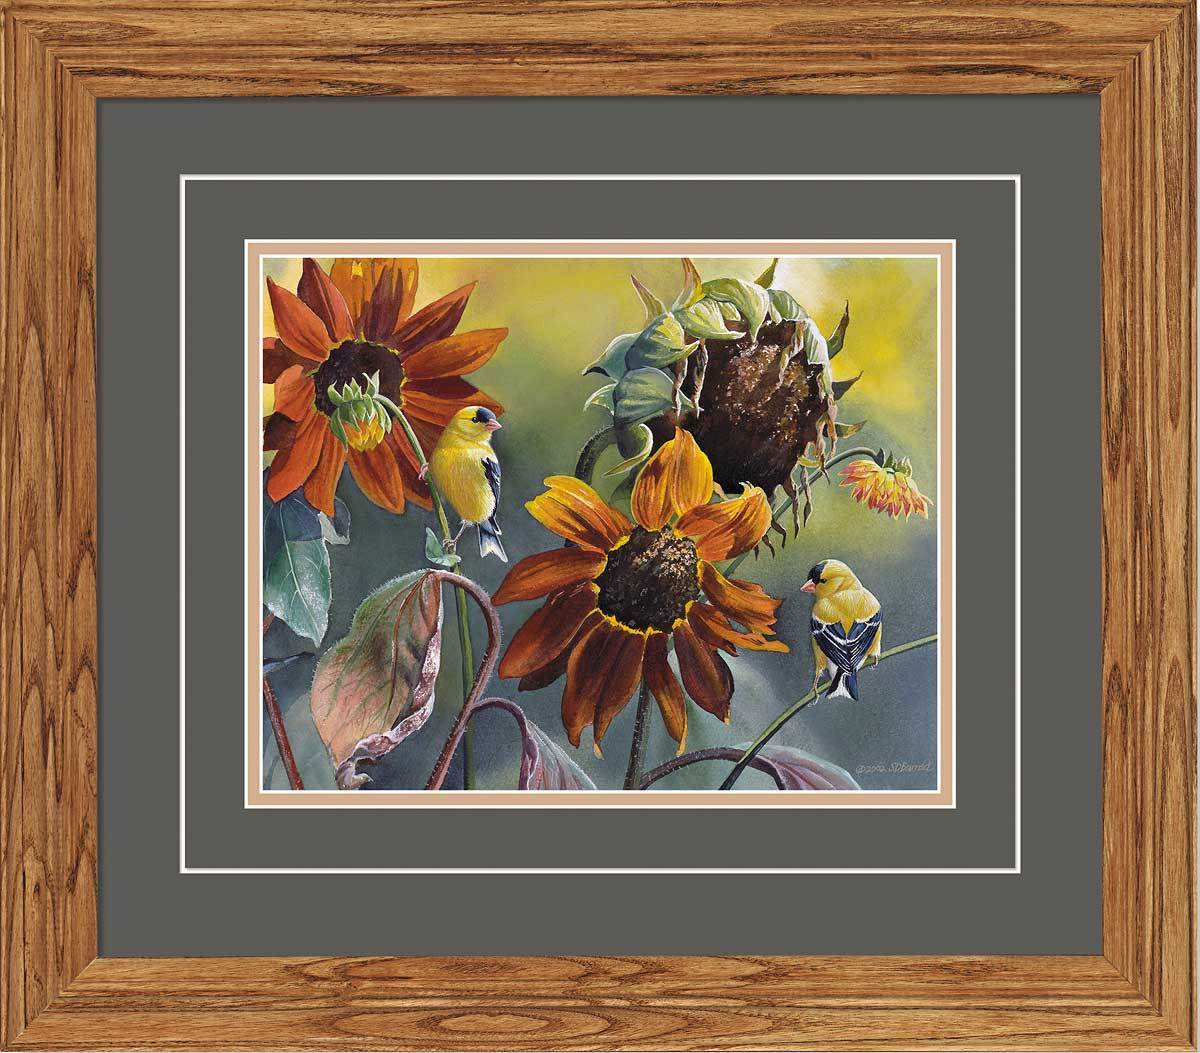 Sun Seekers—goldfinches Gna Deluxe Framed Print